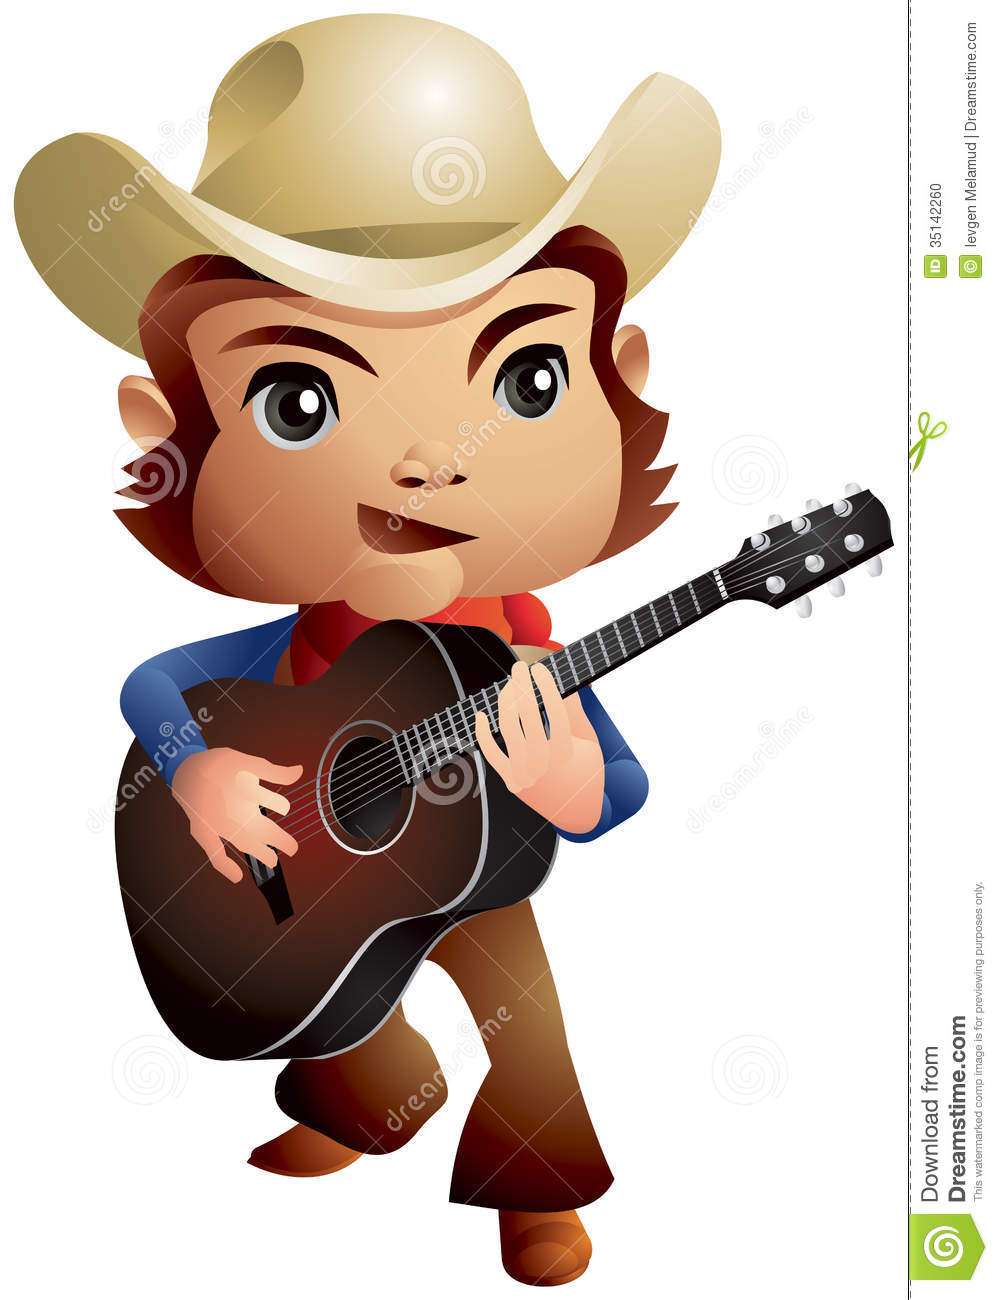 Country Music Cowboy Stock Photo - Image: 35142260